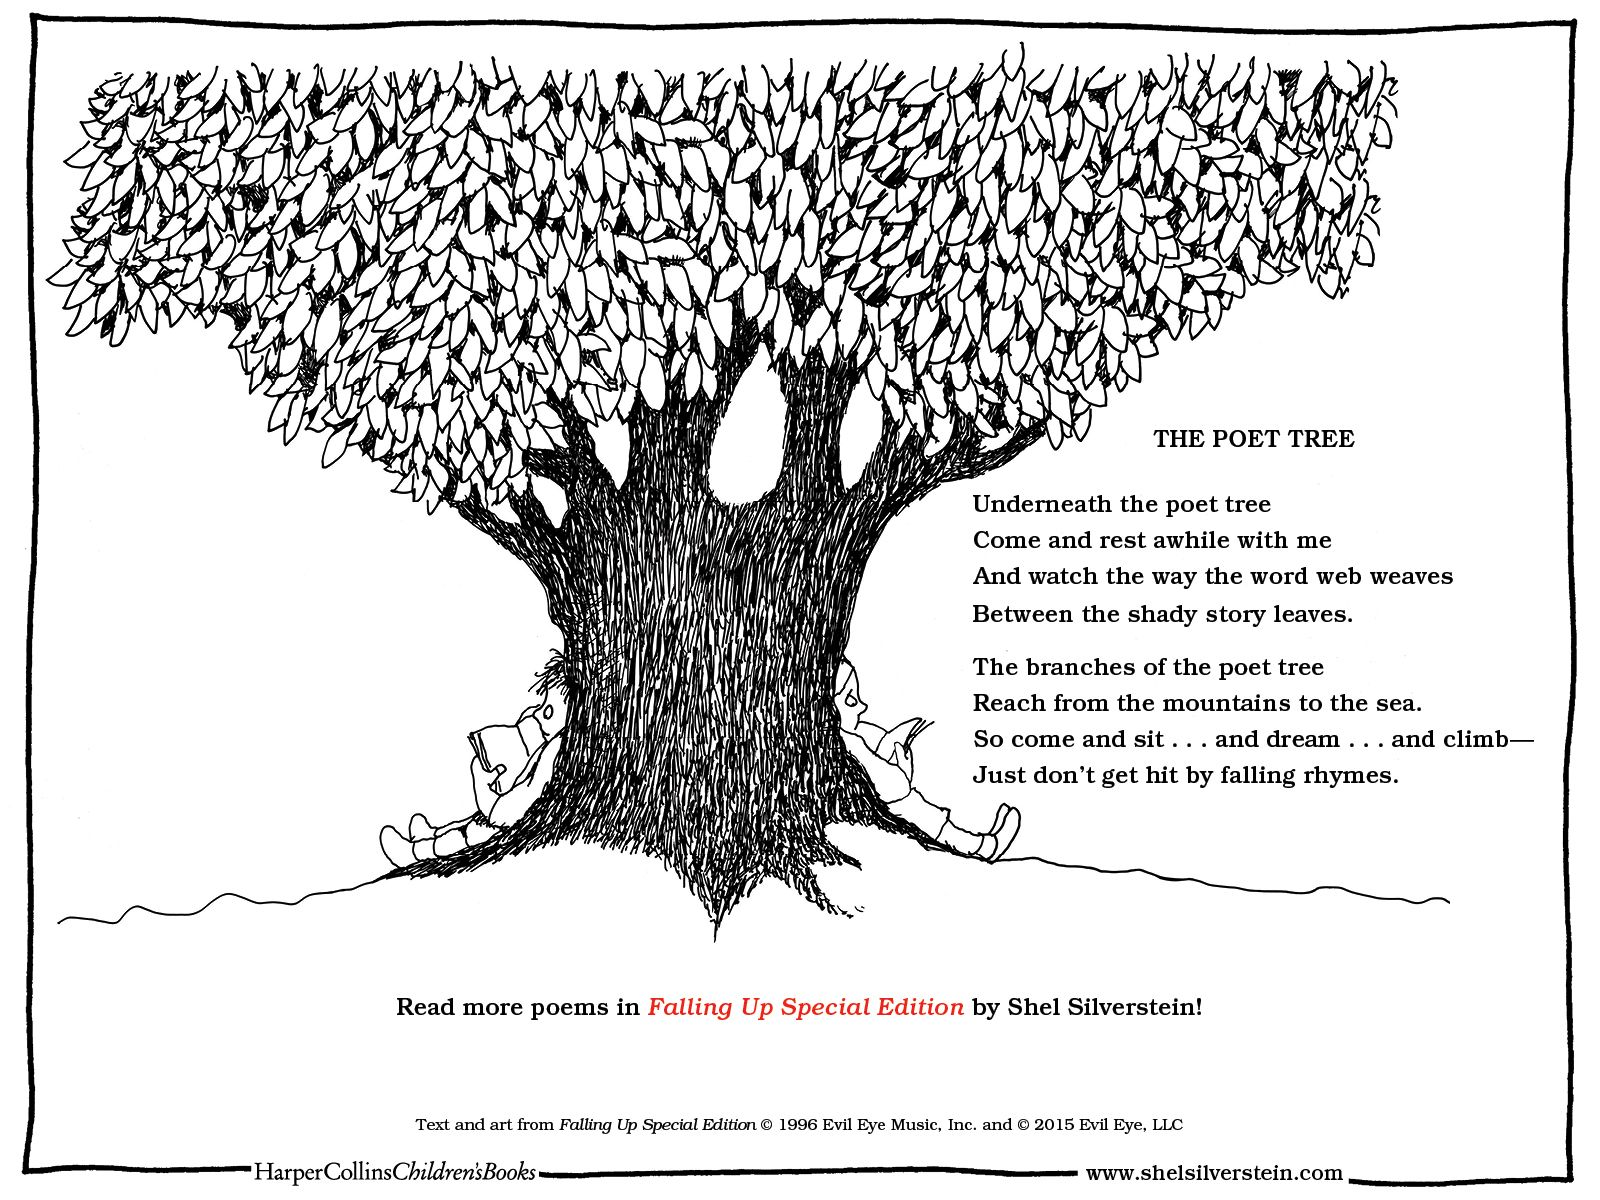 Shel Silverstein Quotes About Education: Quotes Silverstein Shel Shel Silverstein Quote HD